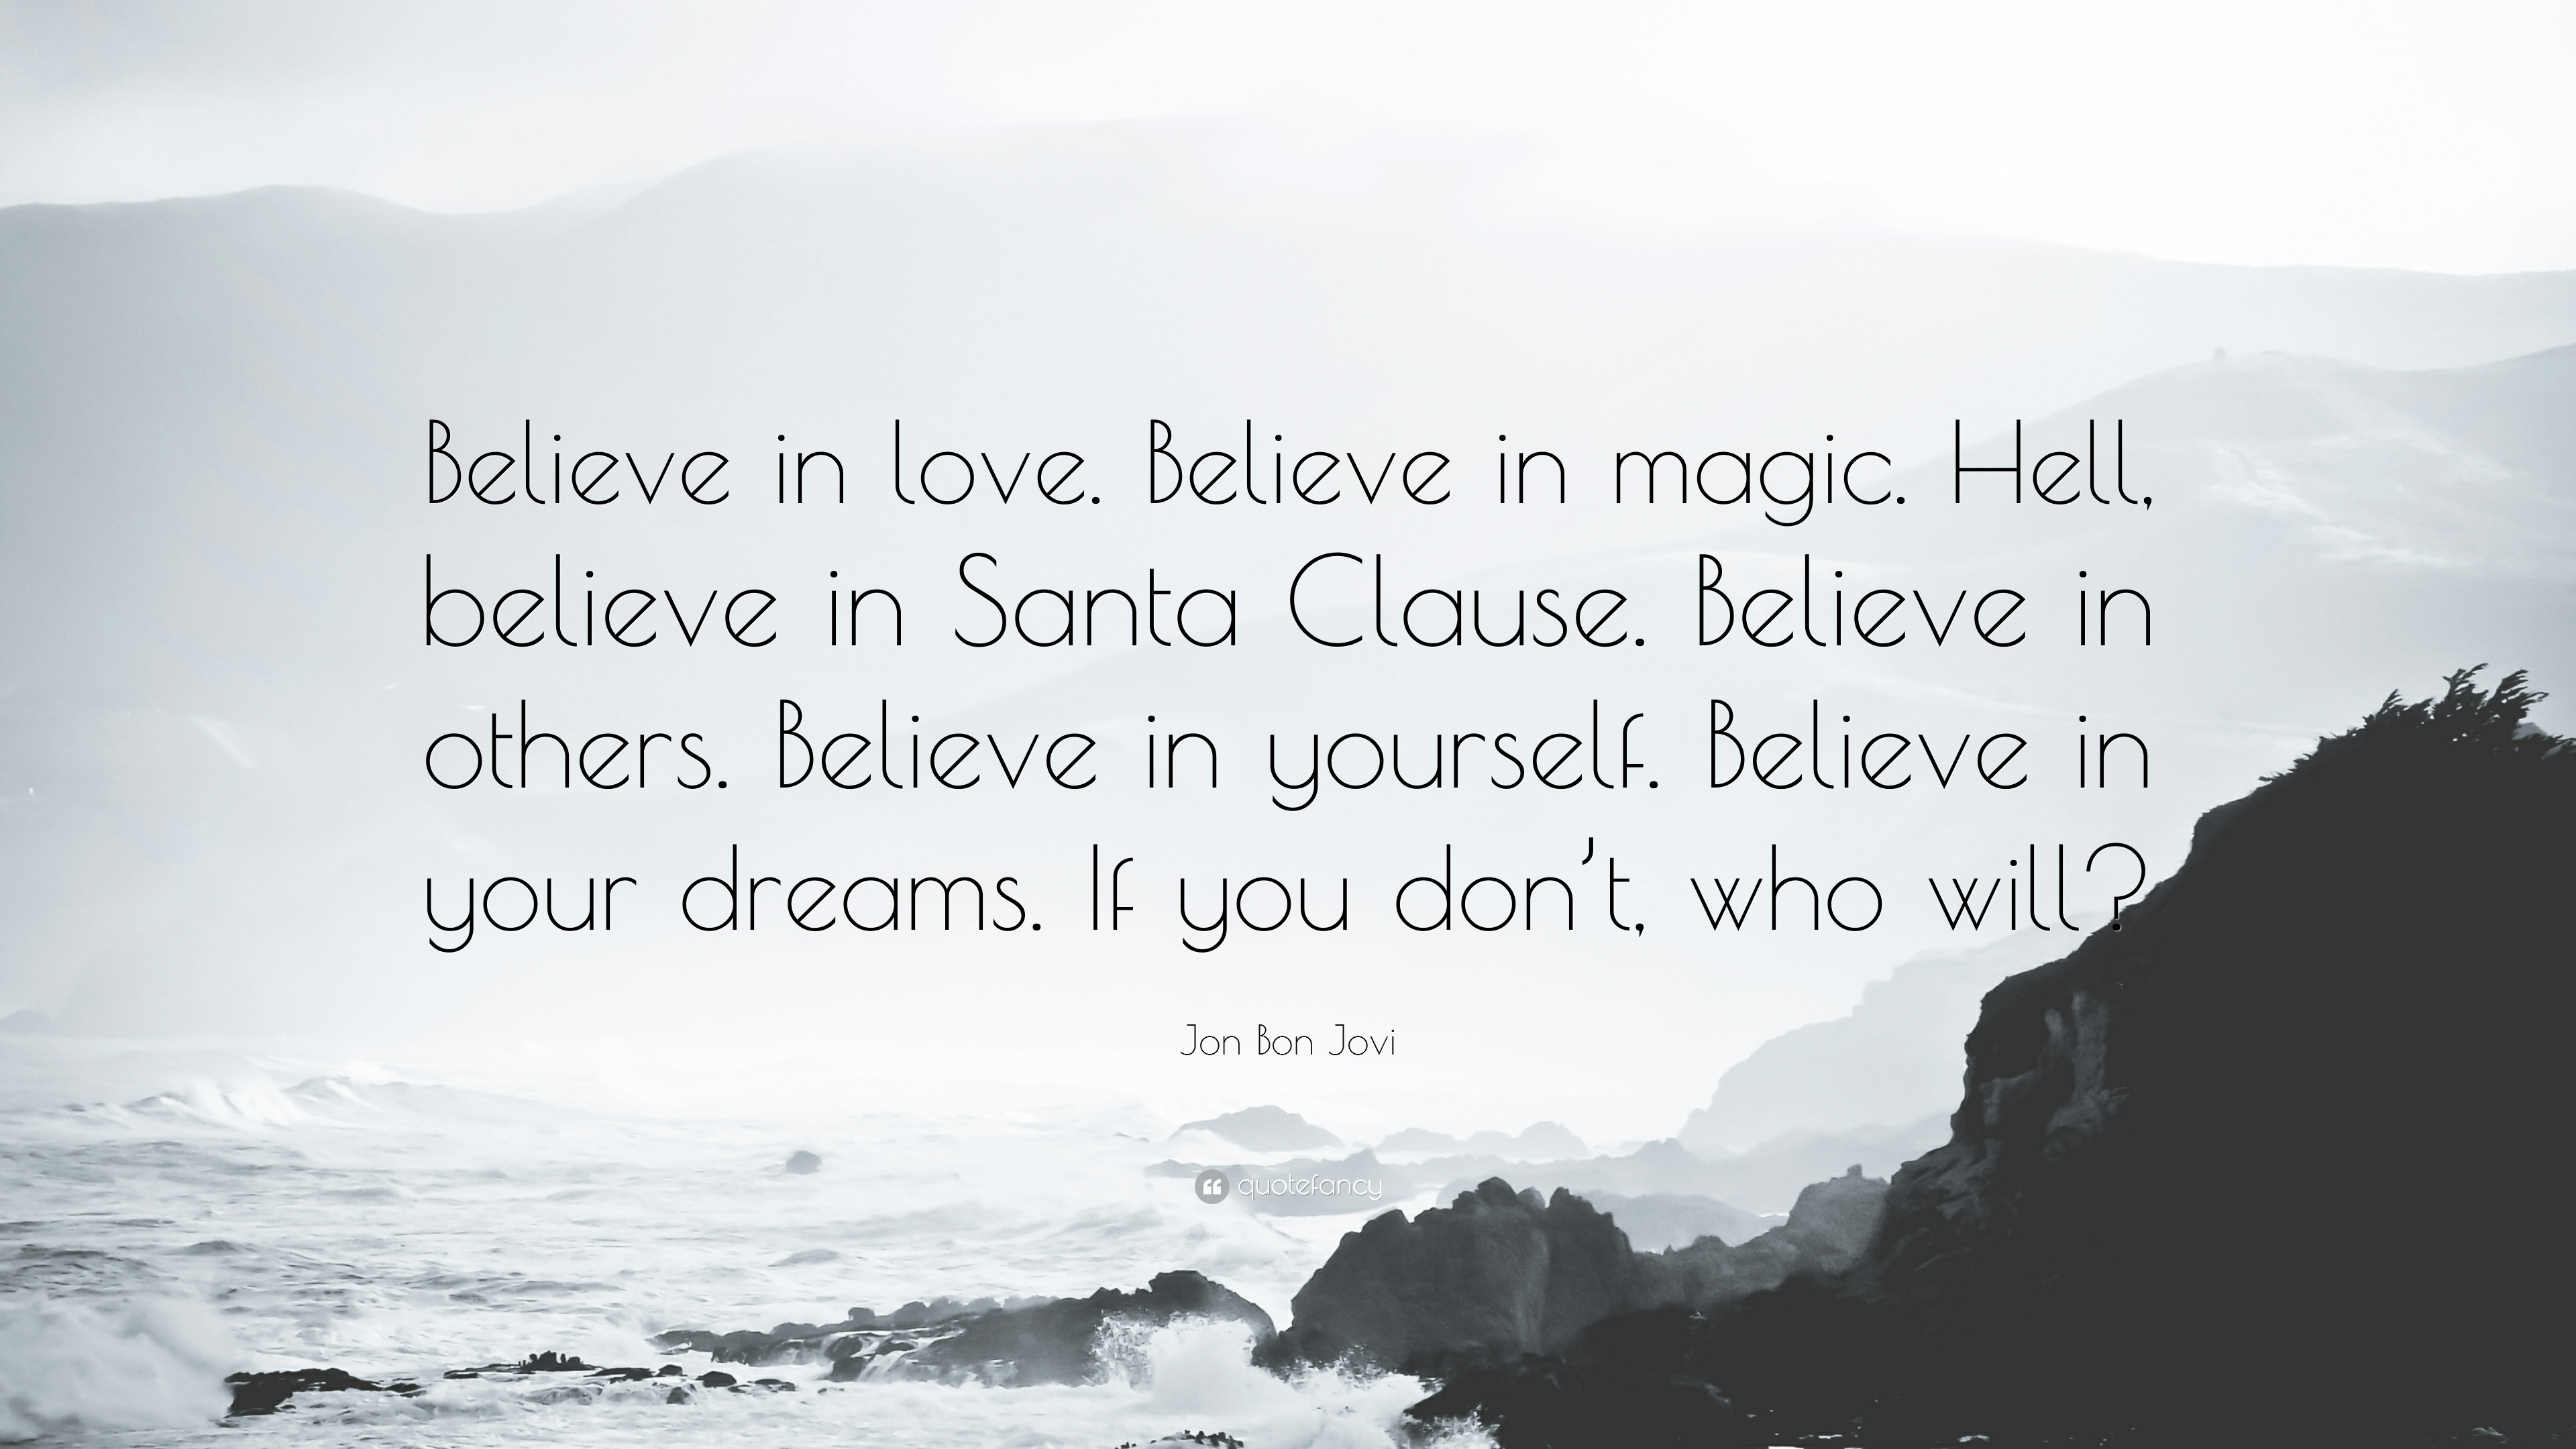 """Quotes About Believe In Love: Jon Bon Jovi Quote: """"Believe In Love. Believe In Magic"""